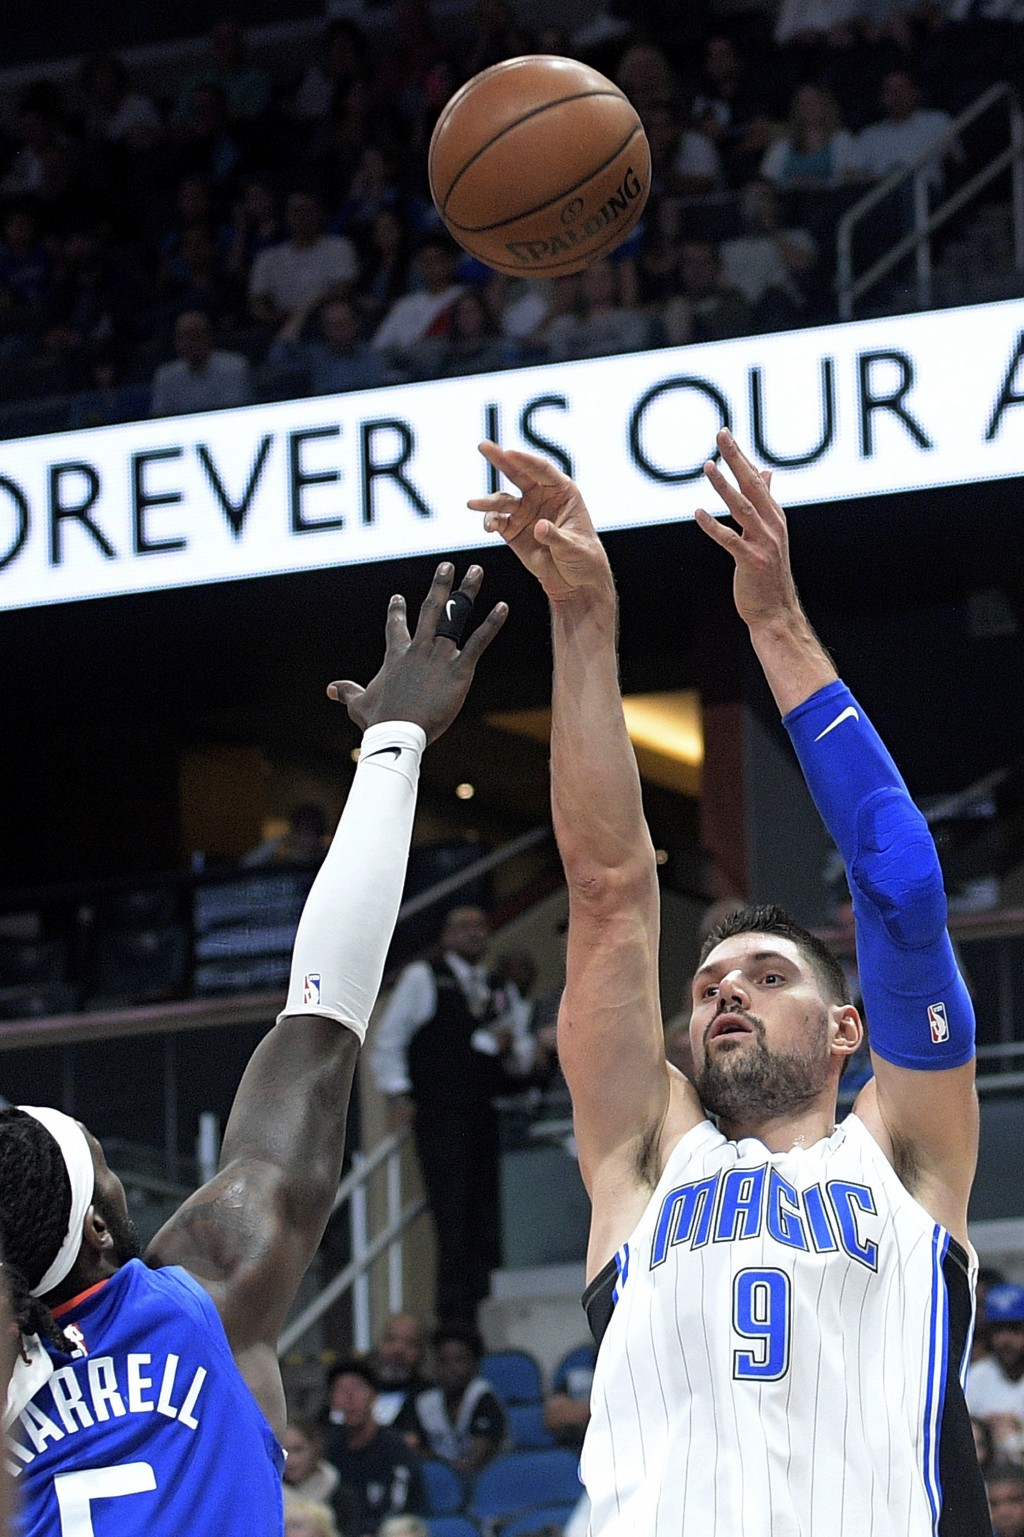 Orlando Magic center Nikola Vucevic (9) goes up for a shot in front of Los Angeles Clippers forward Montrezl Harrell (5) during the first half of an N